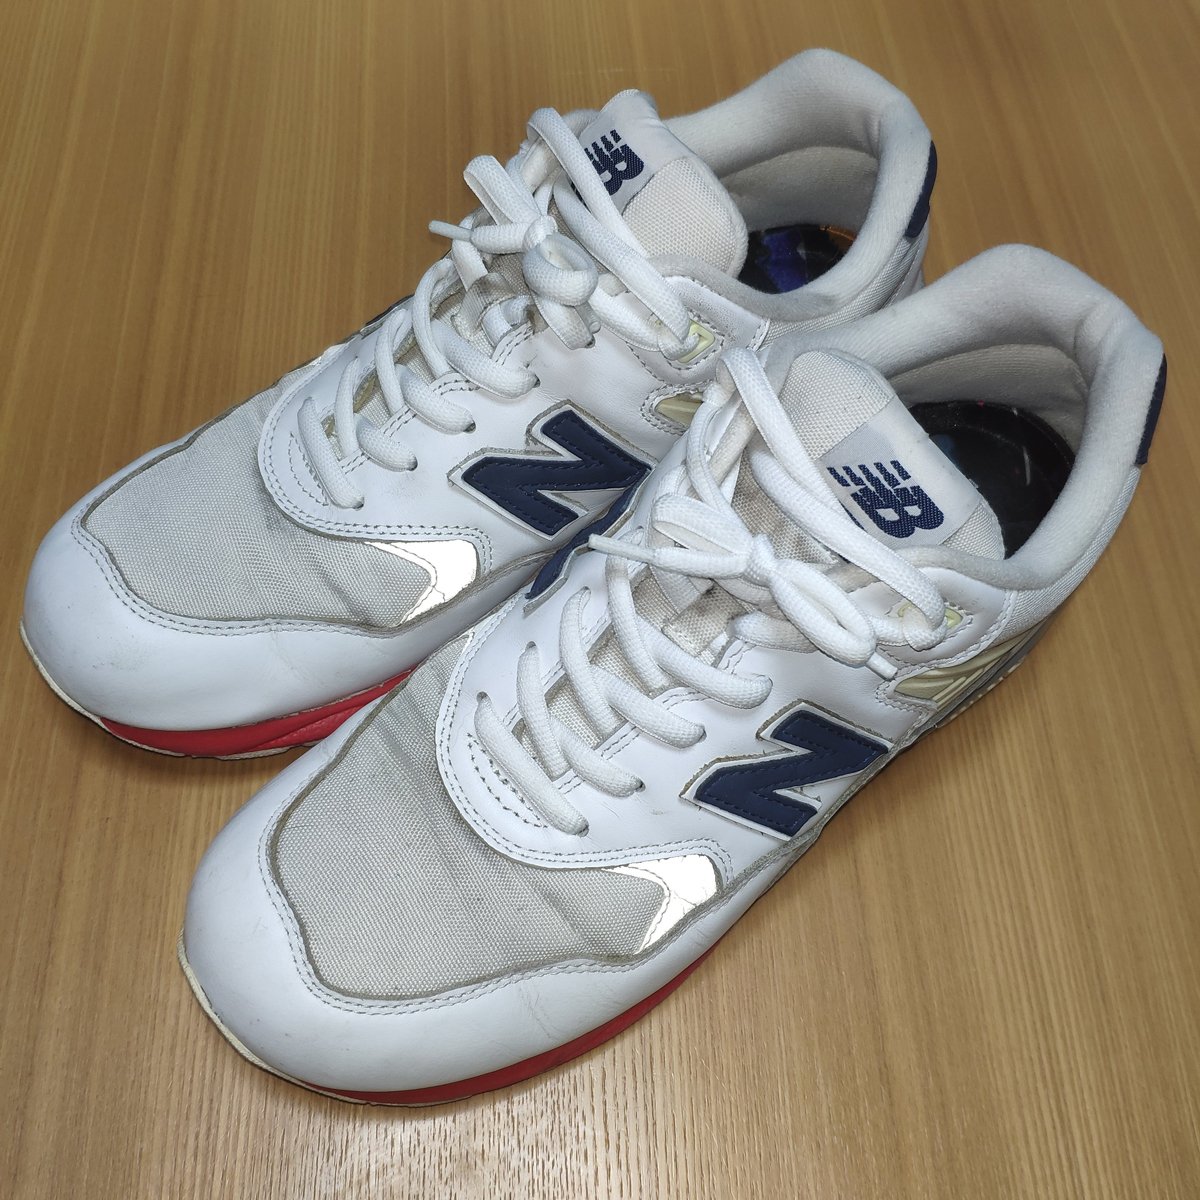 80bd78bf0bed3 NEW BALANCE x HECTIC x mita sneakers MT580 TRX(ニューバランス・ヘクティク・ミタスニーカー